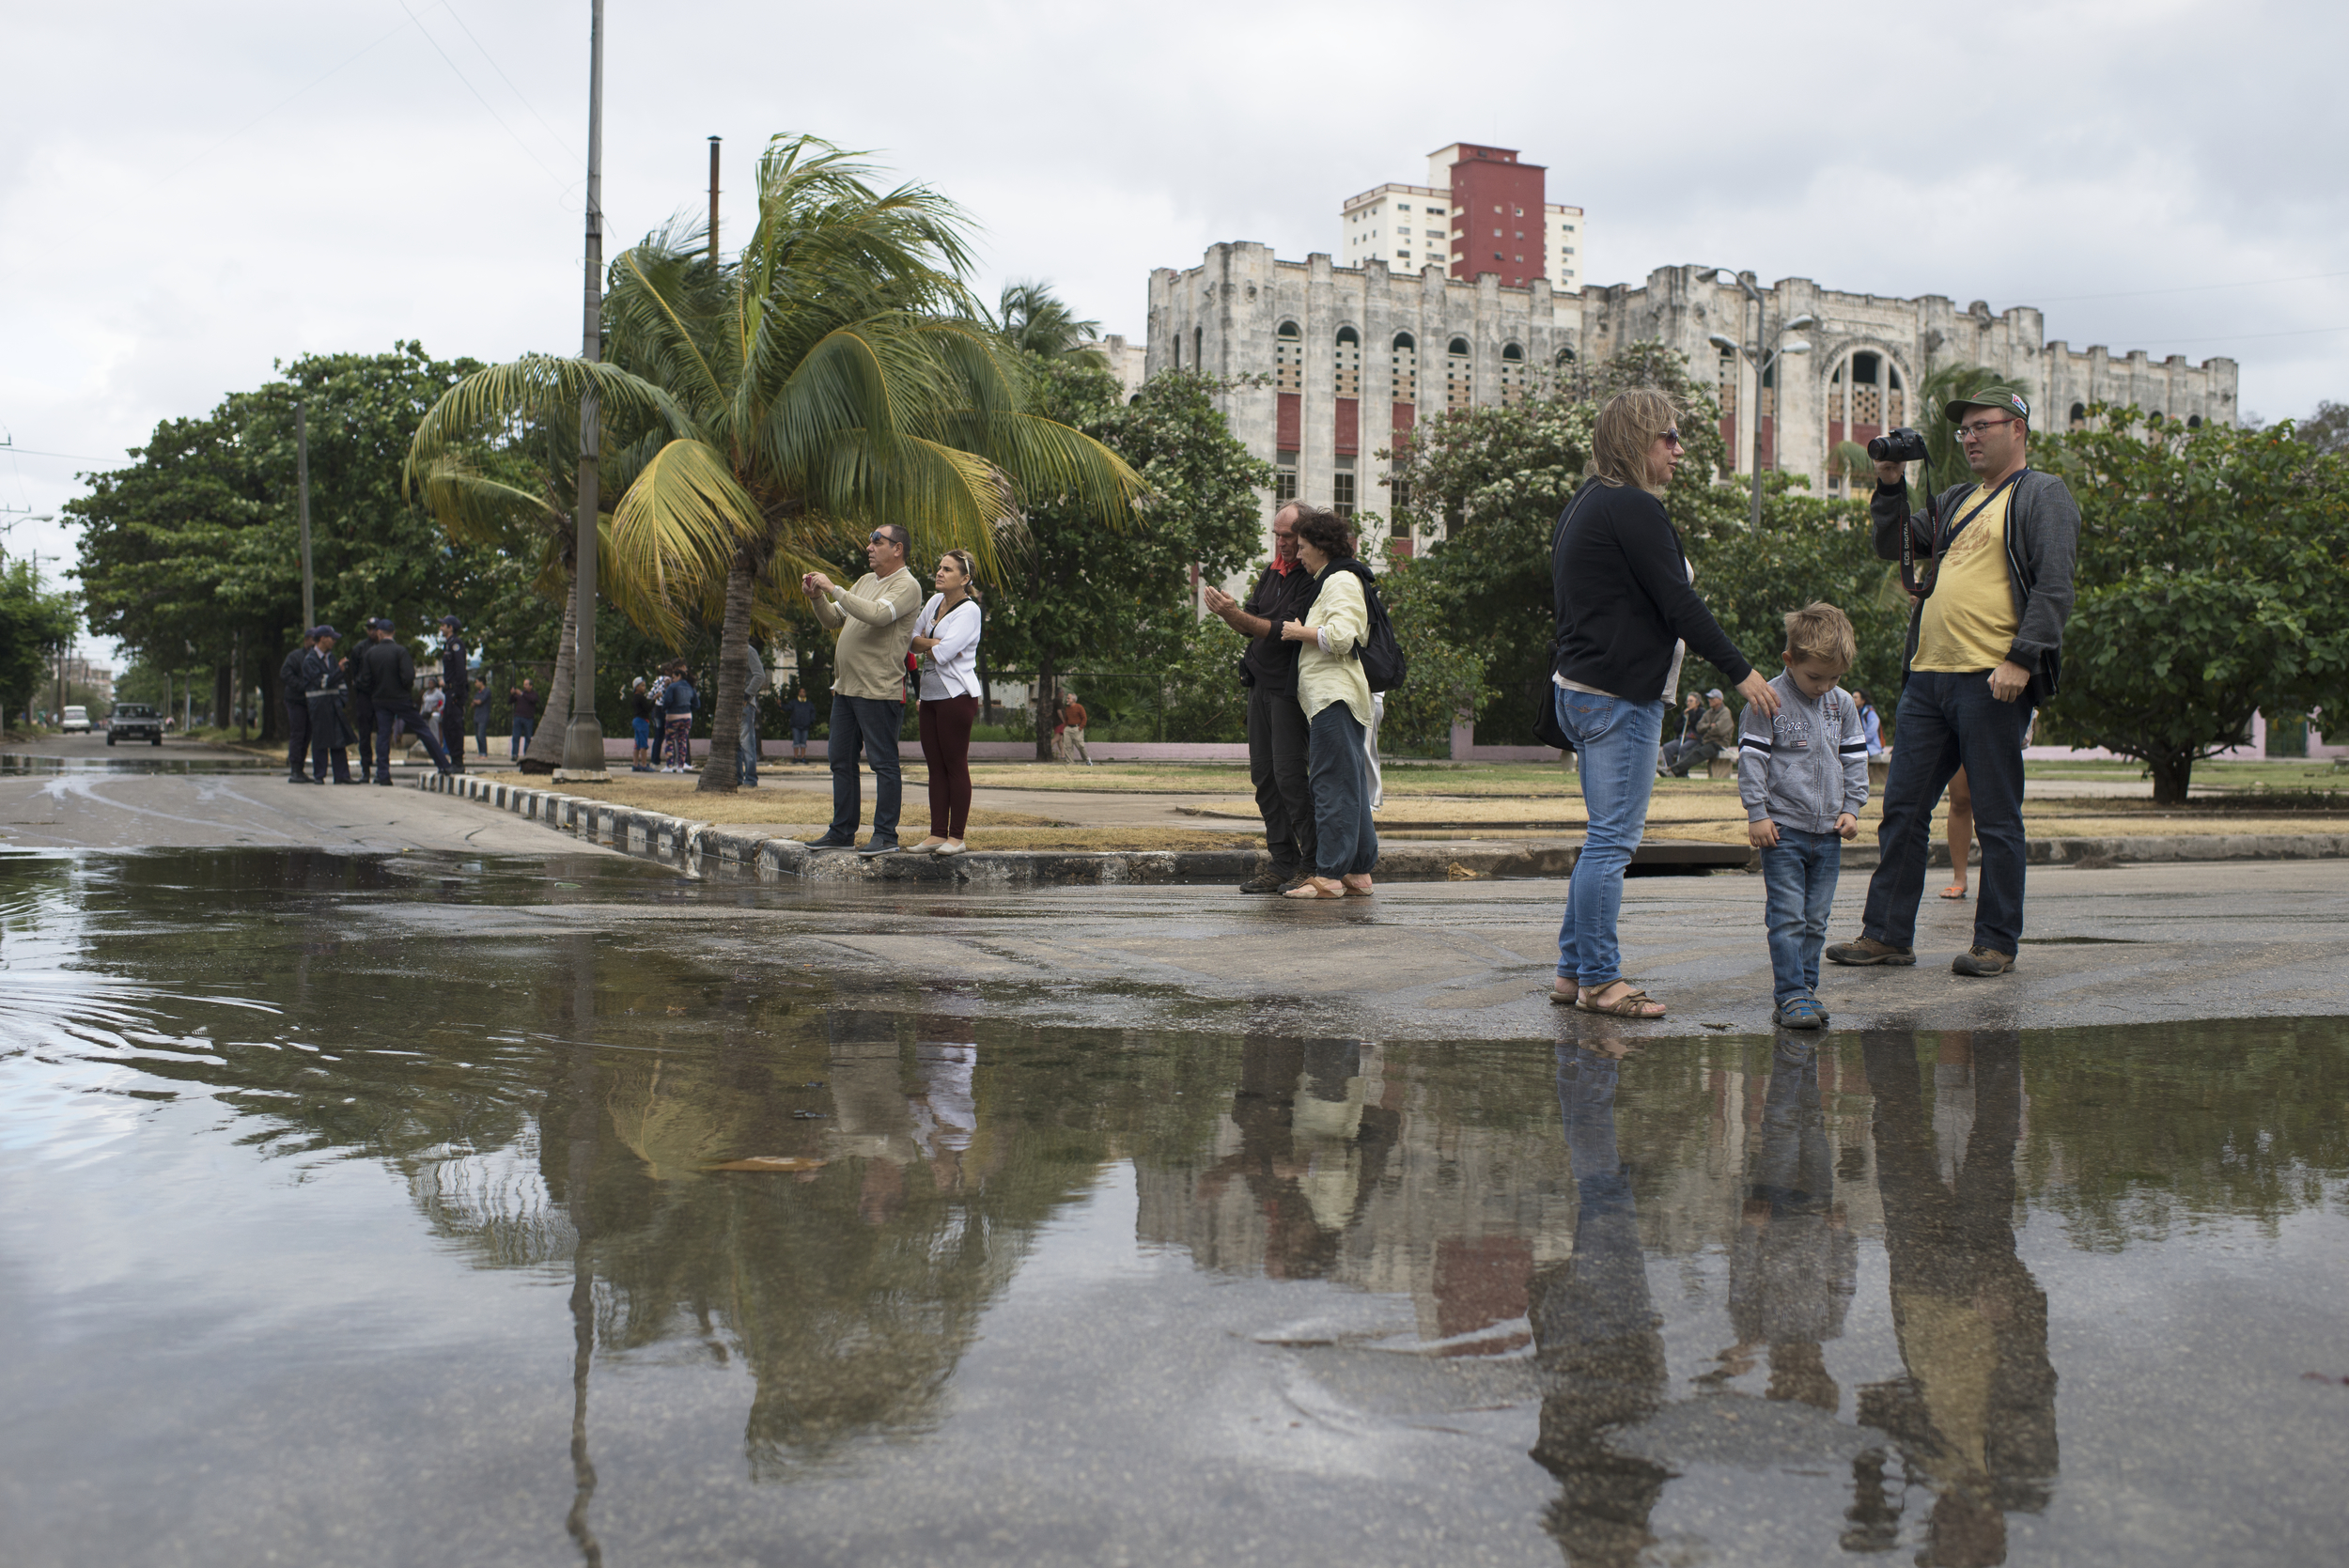 A family stands next to the flood waters in Havana, Cuba on Jan. 23, 2016.